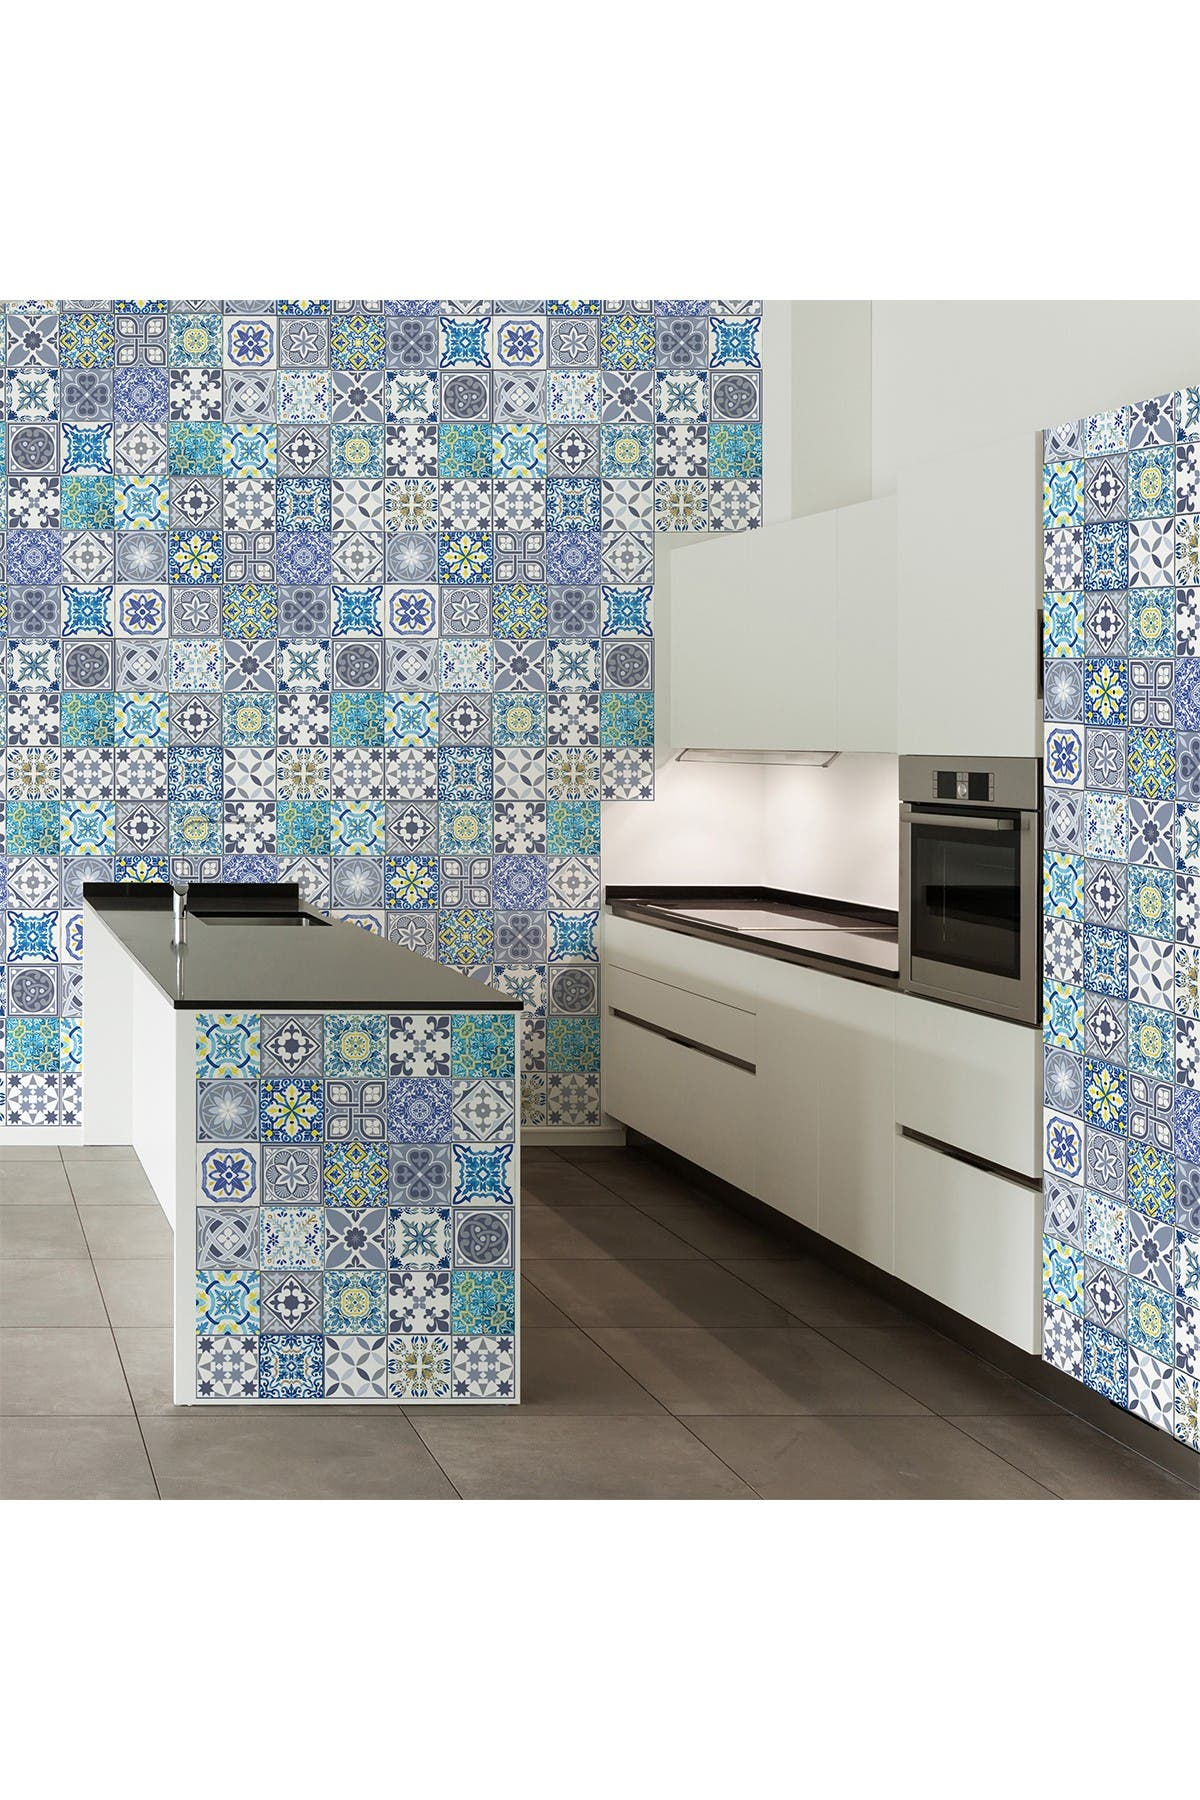 Image of WalPlus King George Blue Mosaic Tile Wall Ceiling Stickers - 48 Pieces